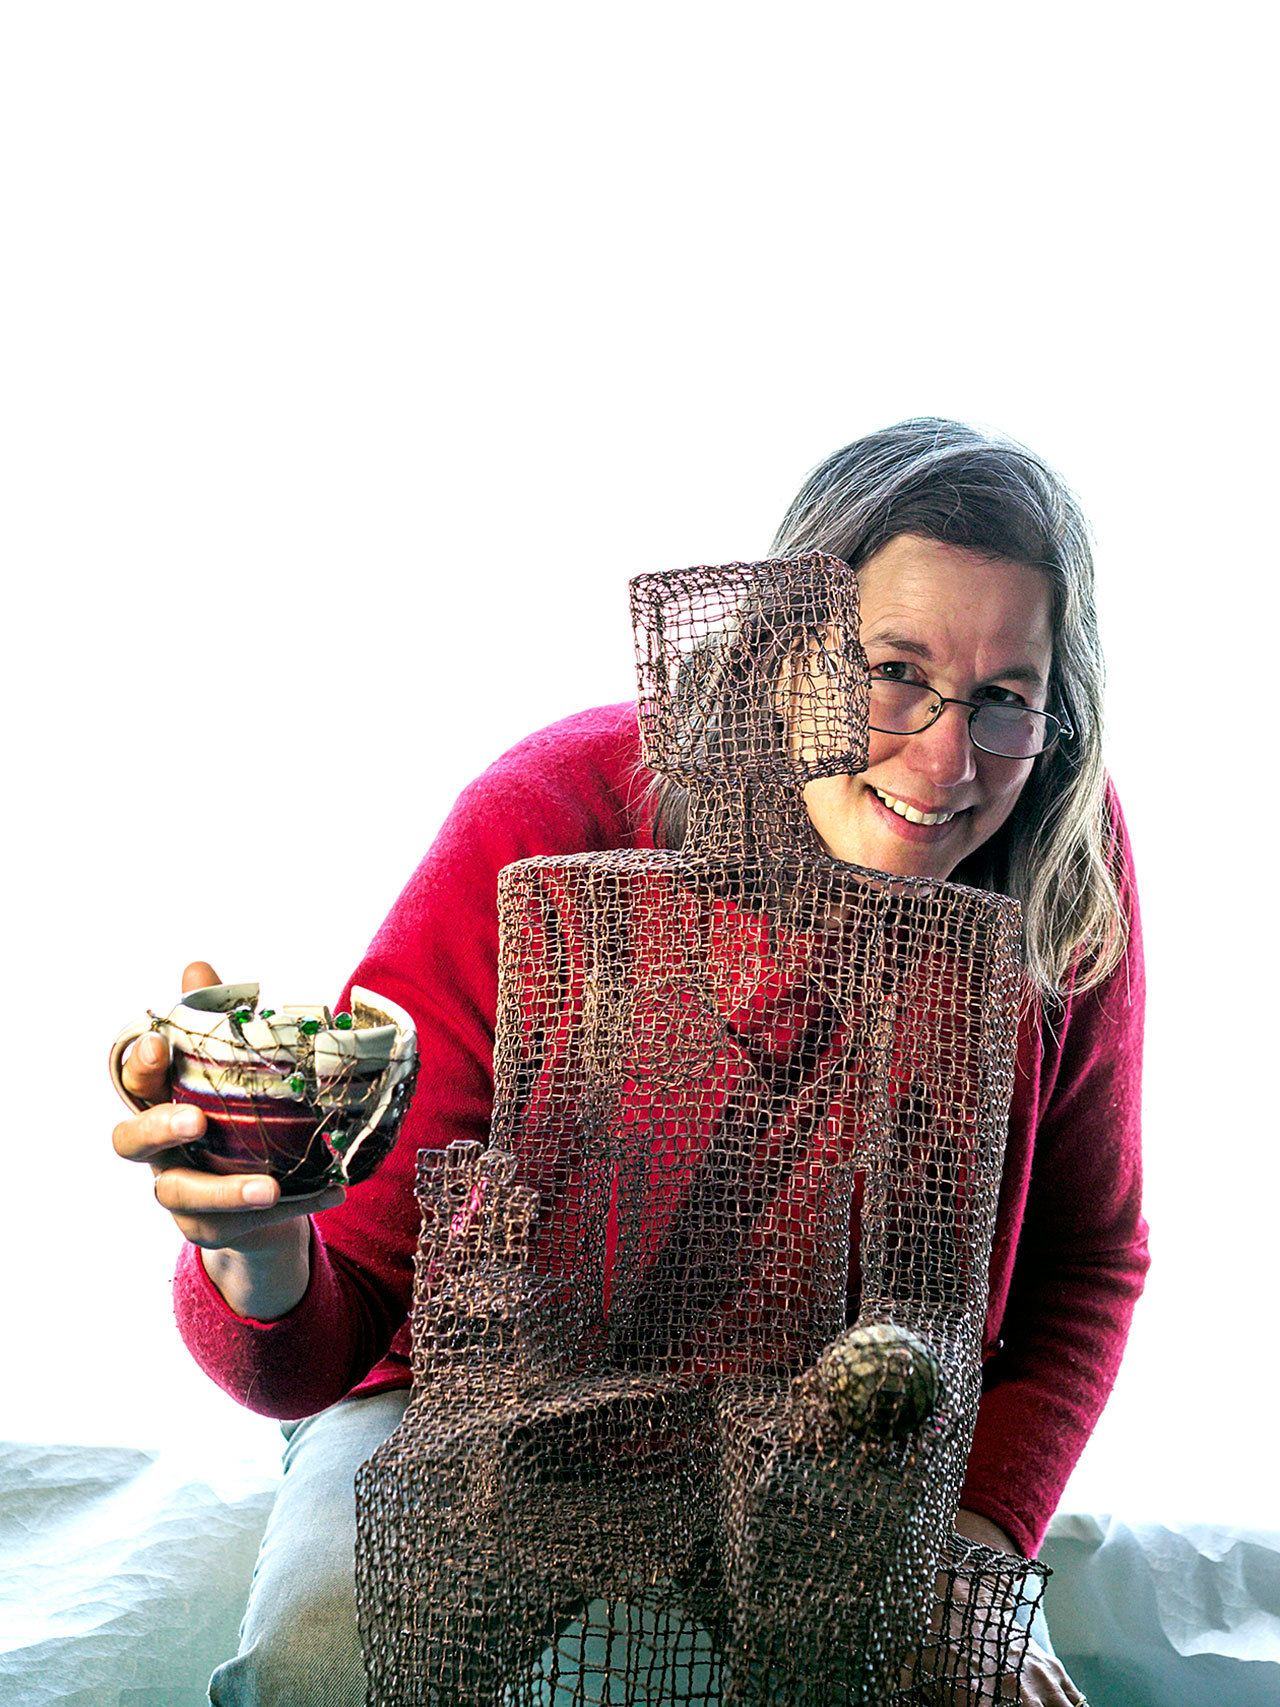 The copper wire sculptures of Jane Van Atta, seen here, will be on display during the 2nd Weekend Art Event at Studio Bob, an art gallery/event space located upstairs at 118 1/2 E. Front St. — John Van Atta.